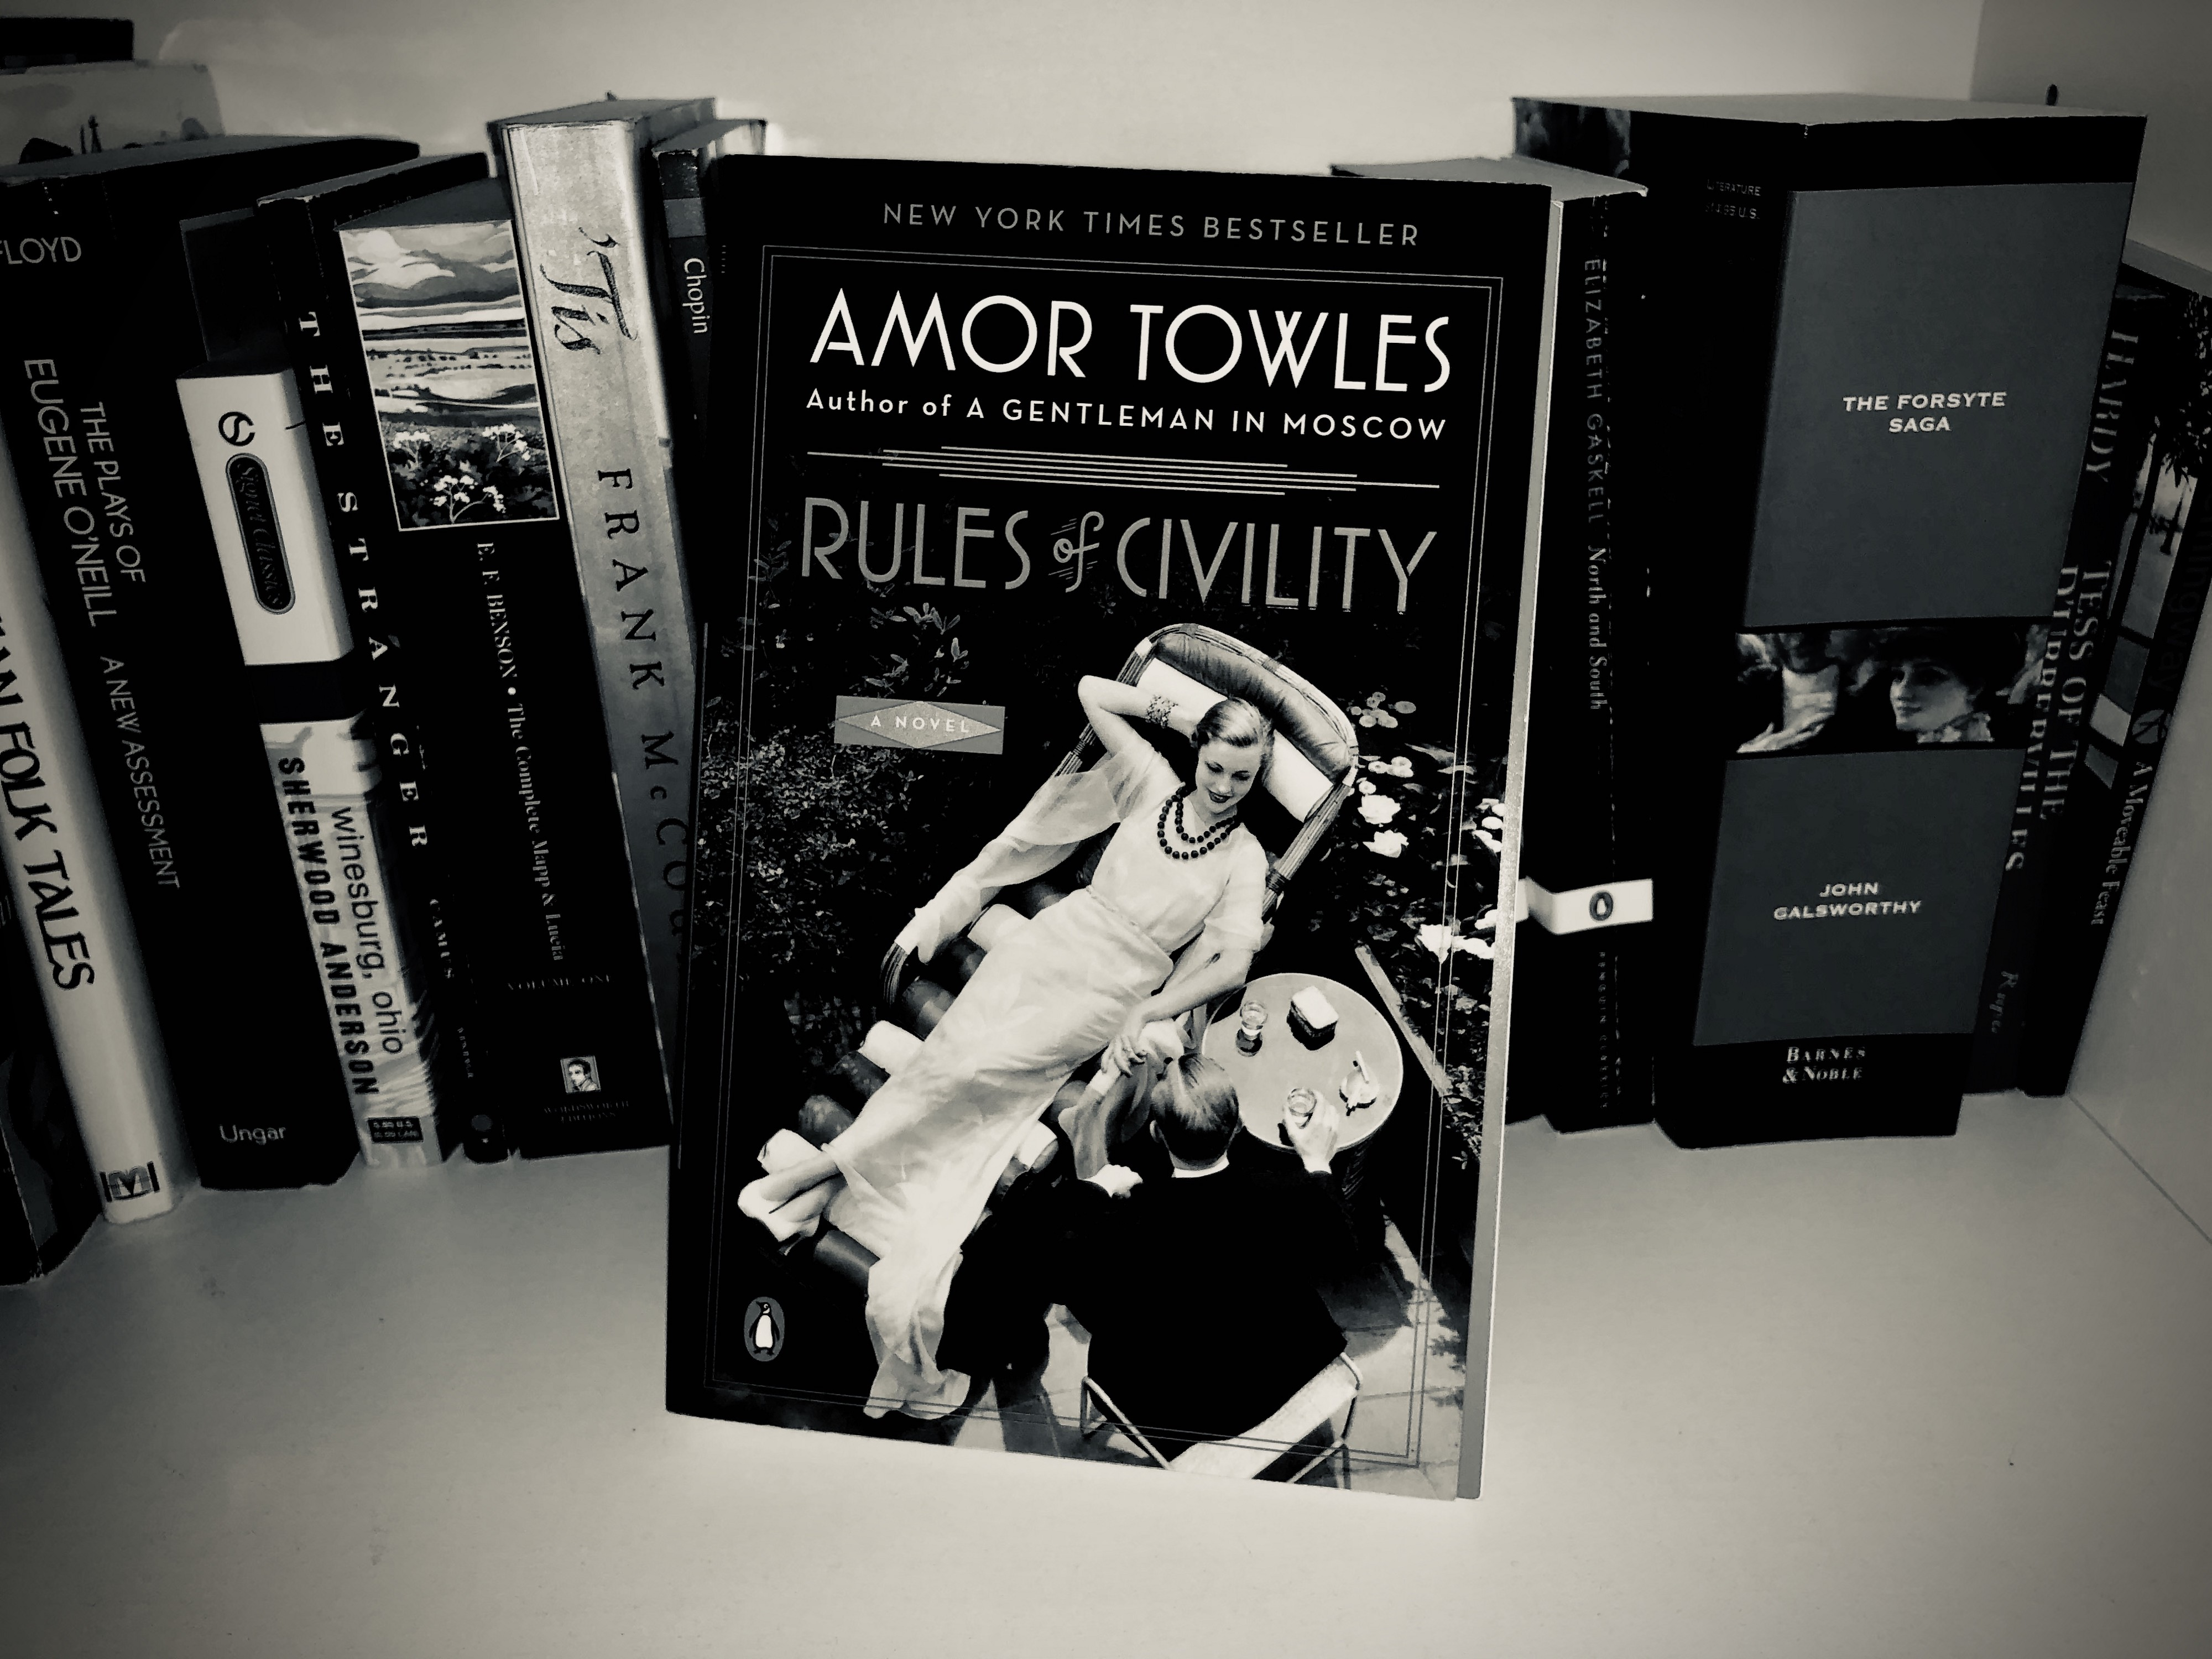 Book Cover for Rules of Civility by Amor Towles